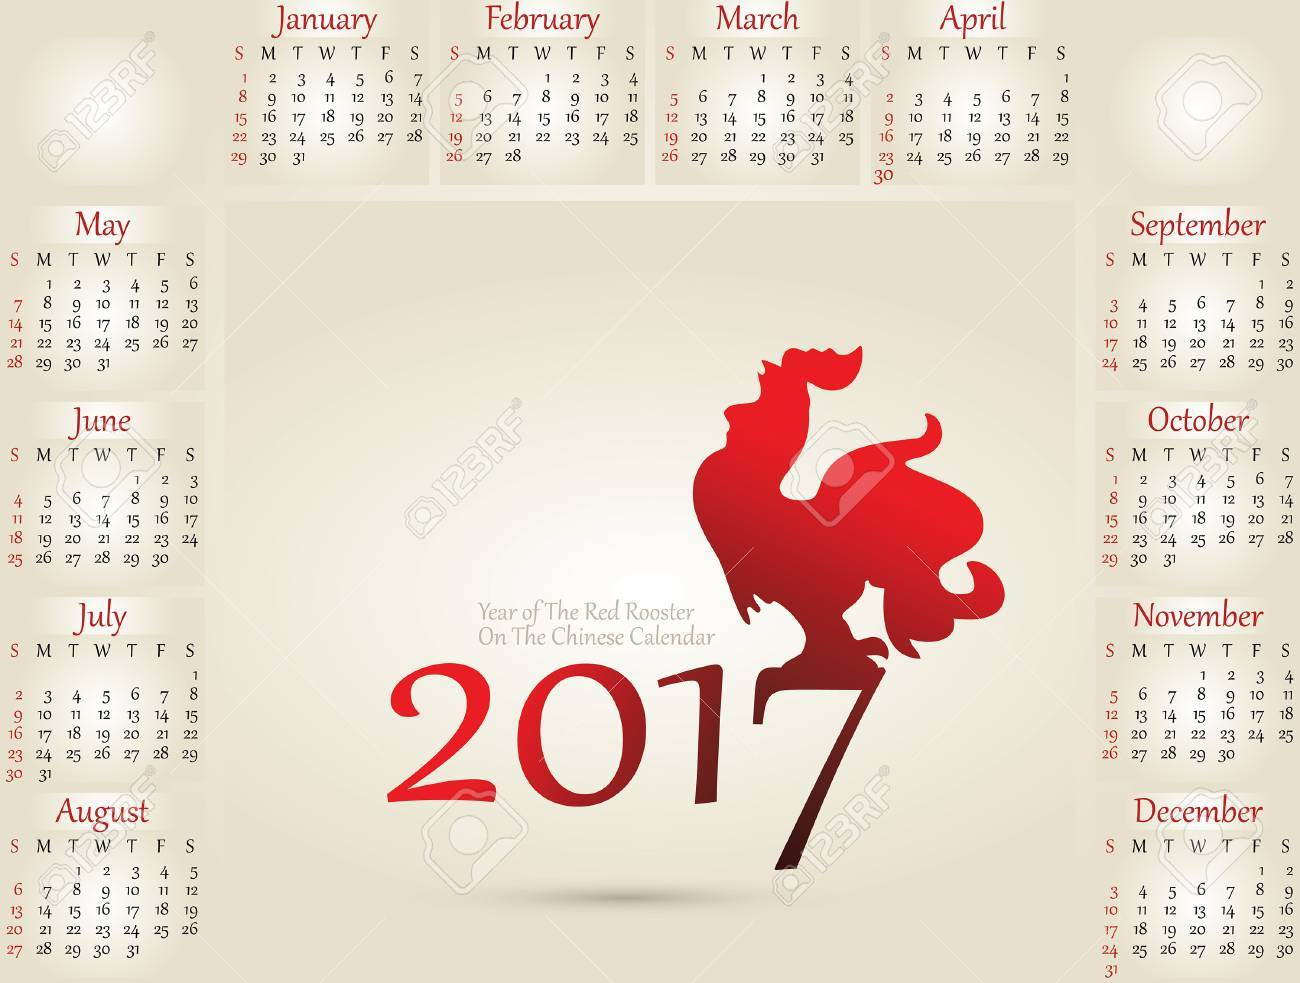 Vector Illustration Of Rooster Symbol Of 2017 On The Chinese